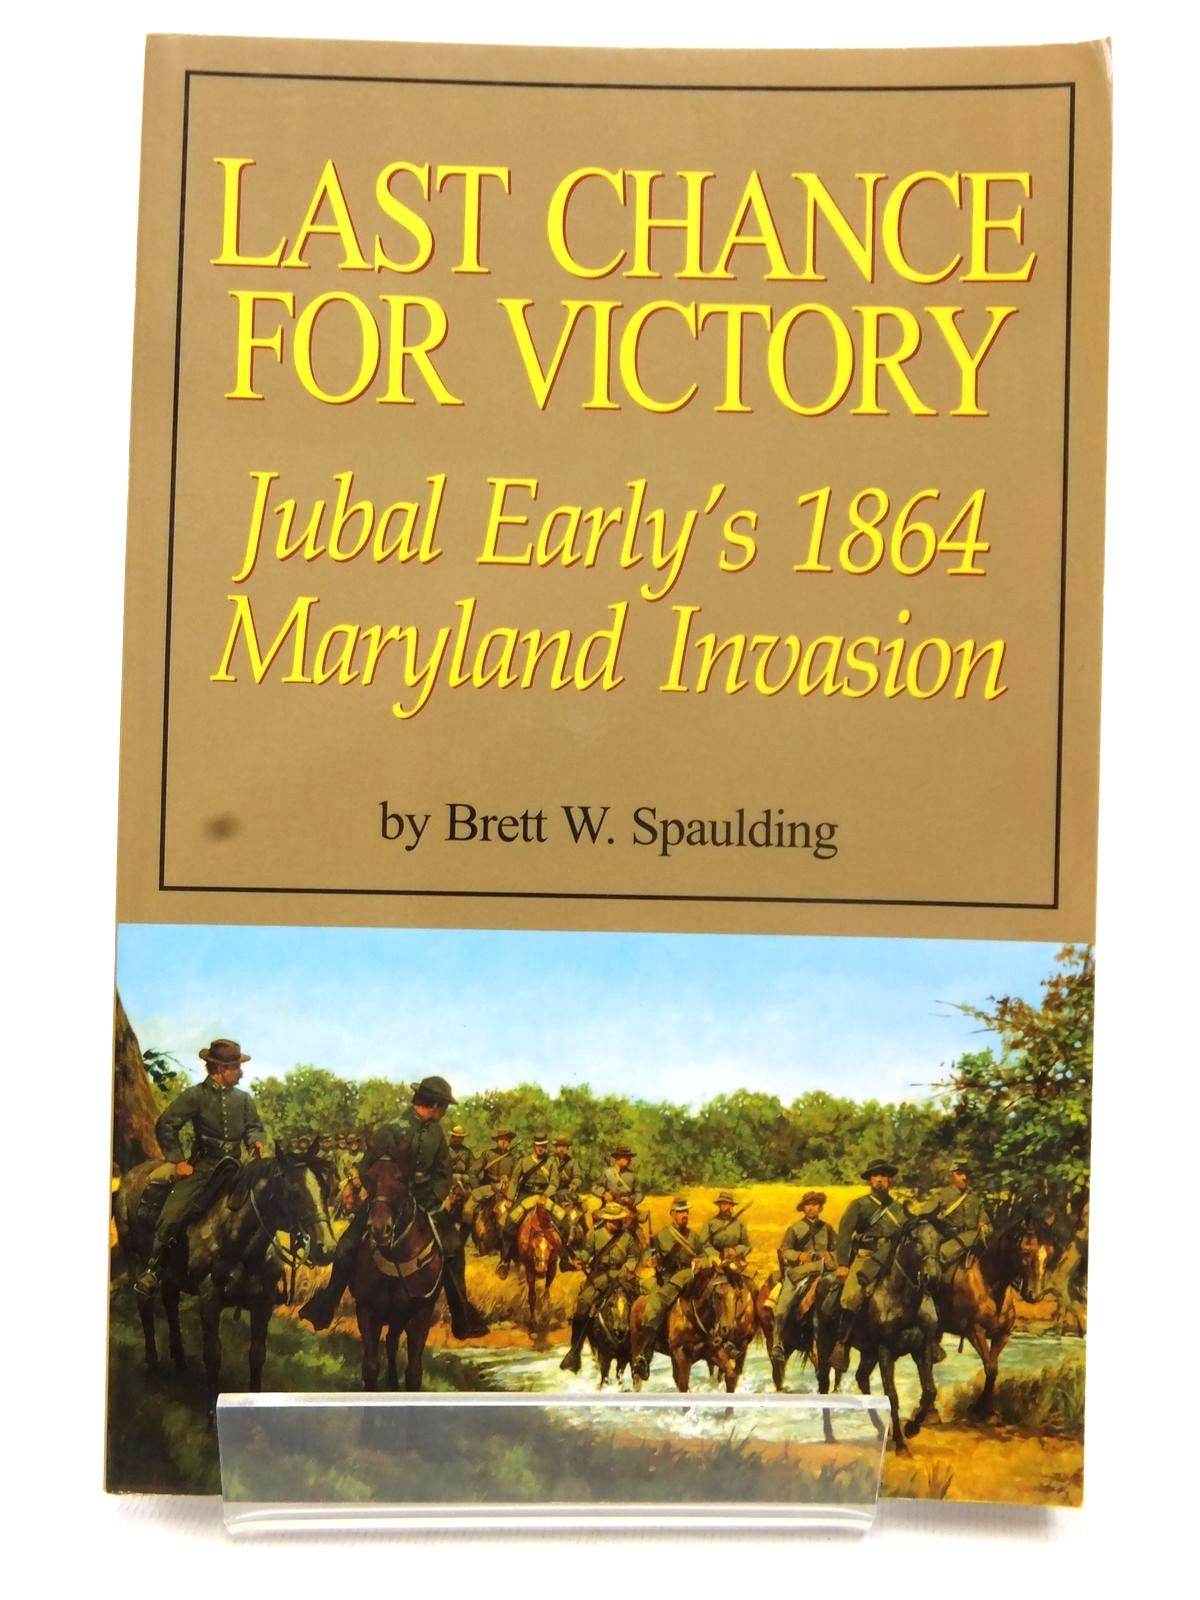 Photo of LAST CHANCE FOR VICTORY written by Spaulding, Brett W. published by Brett Spaulding (STOCK CODE: 1609412)  for sale by Stella & Rose's Books